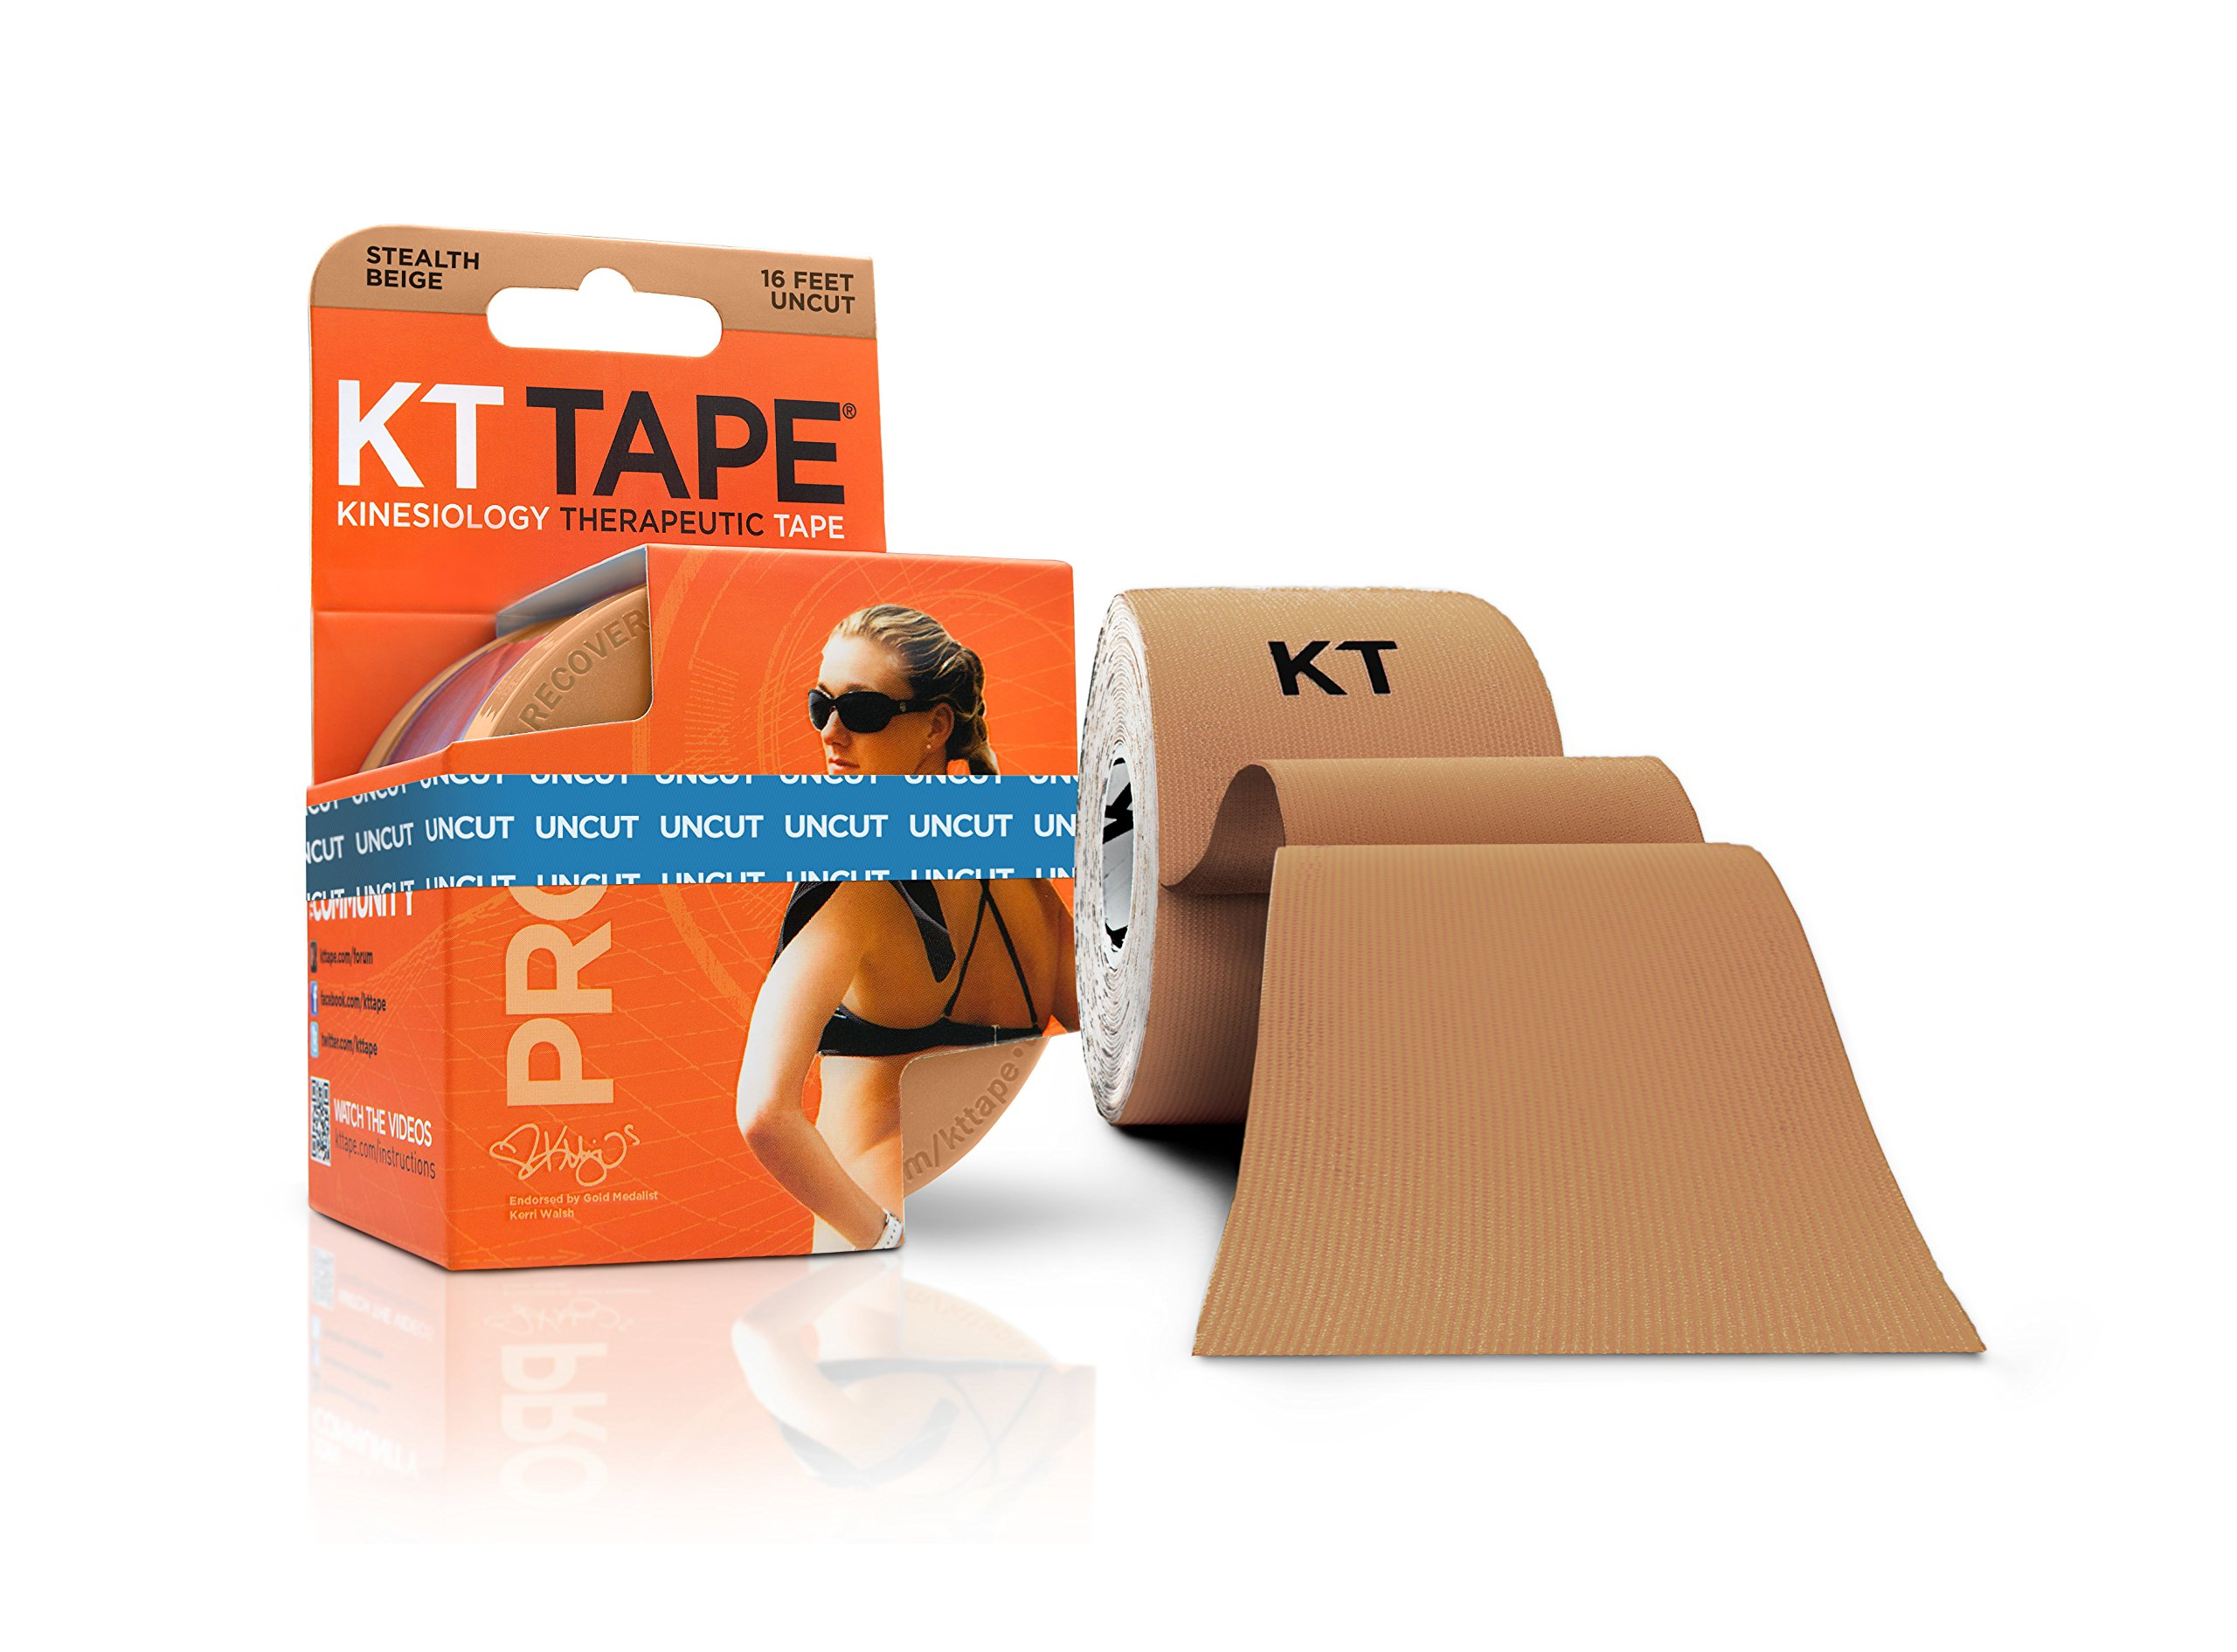 KT Tape PRO Synthetic Elastic Kinesiology Therapeutic Tape, 16.6 Foot Uncut Roll, Beige